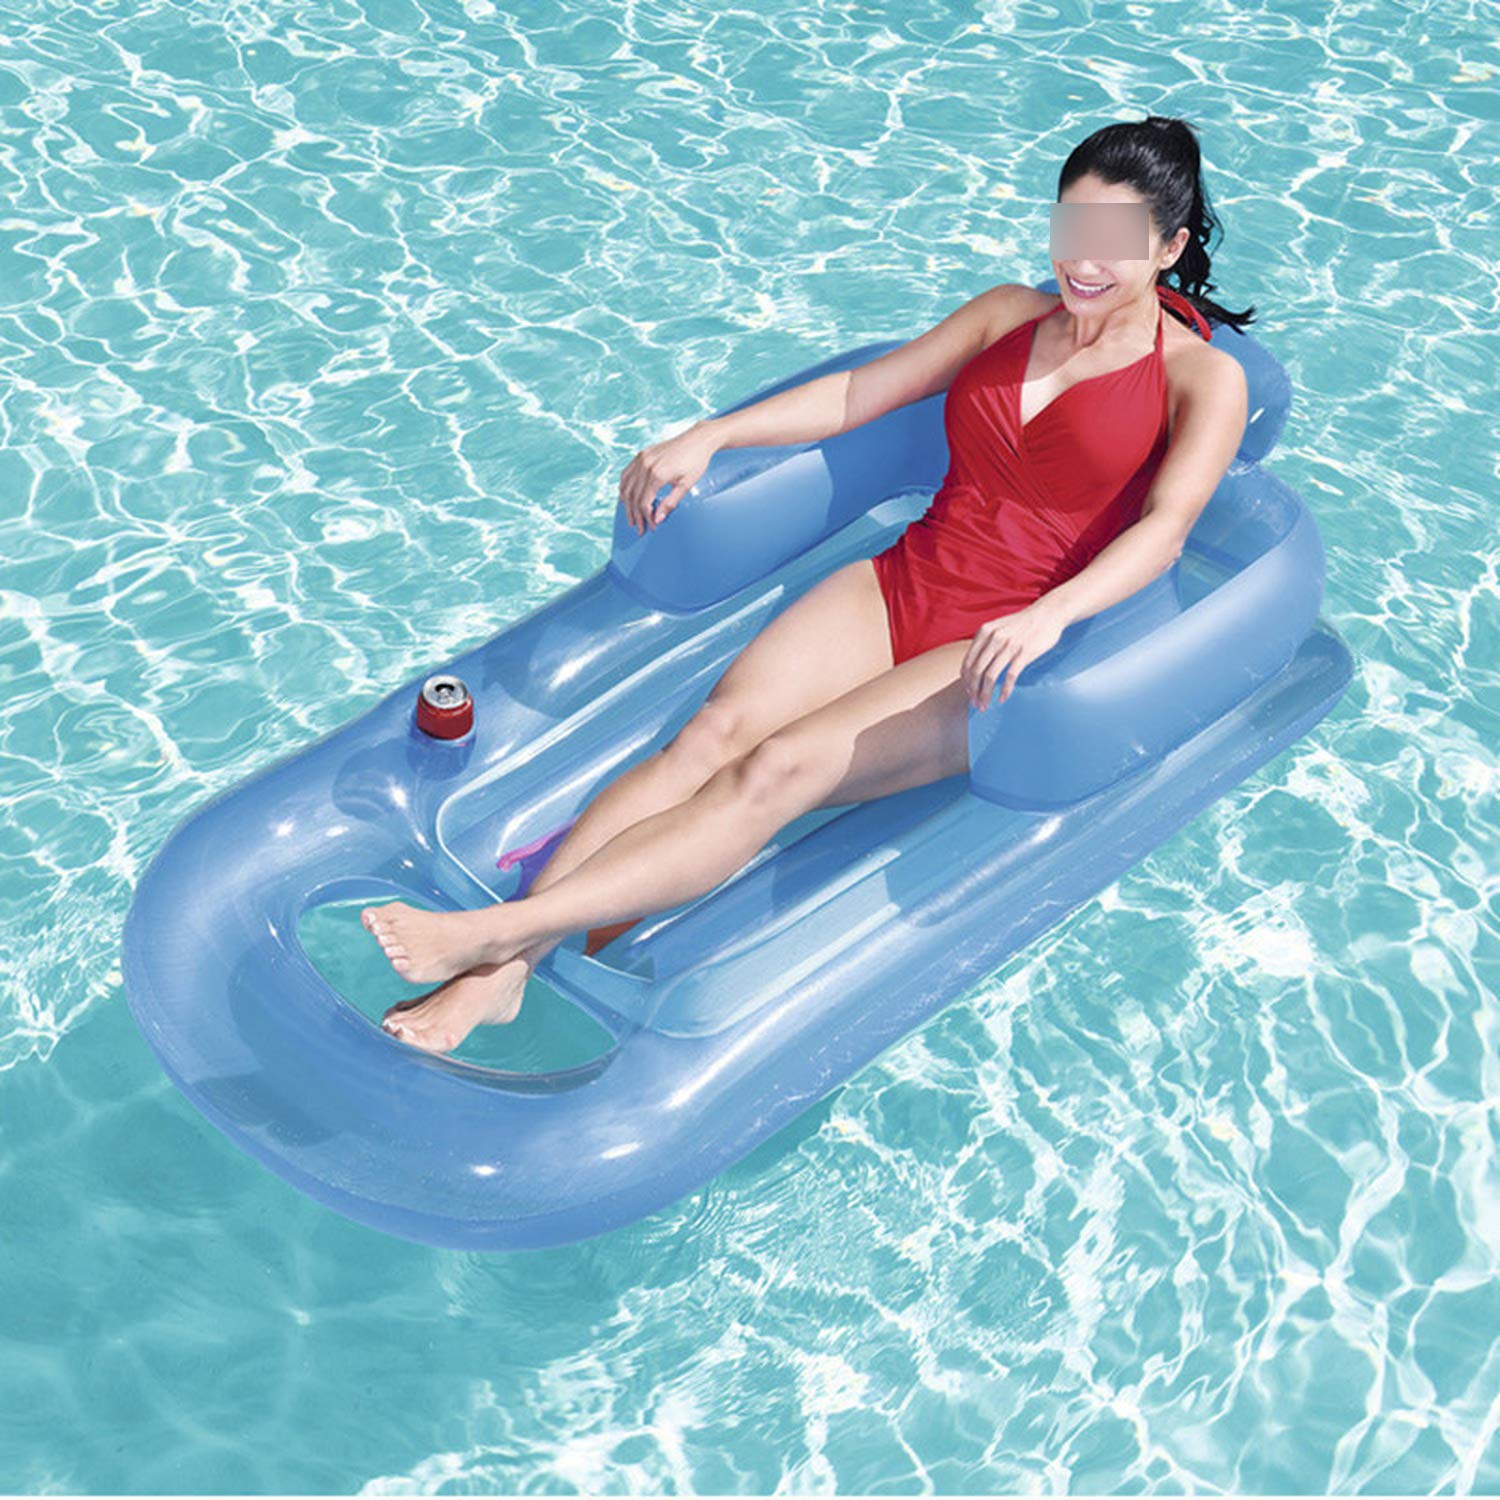 QIUHUAXIANG Inflatable Floating Row 157X89Cm Beach Swimming Air Mattress Pool Floats Floating Lounge Sleeping Bed for Water Sports Party,Random Color by QIUHUAXIANG (Image #2)